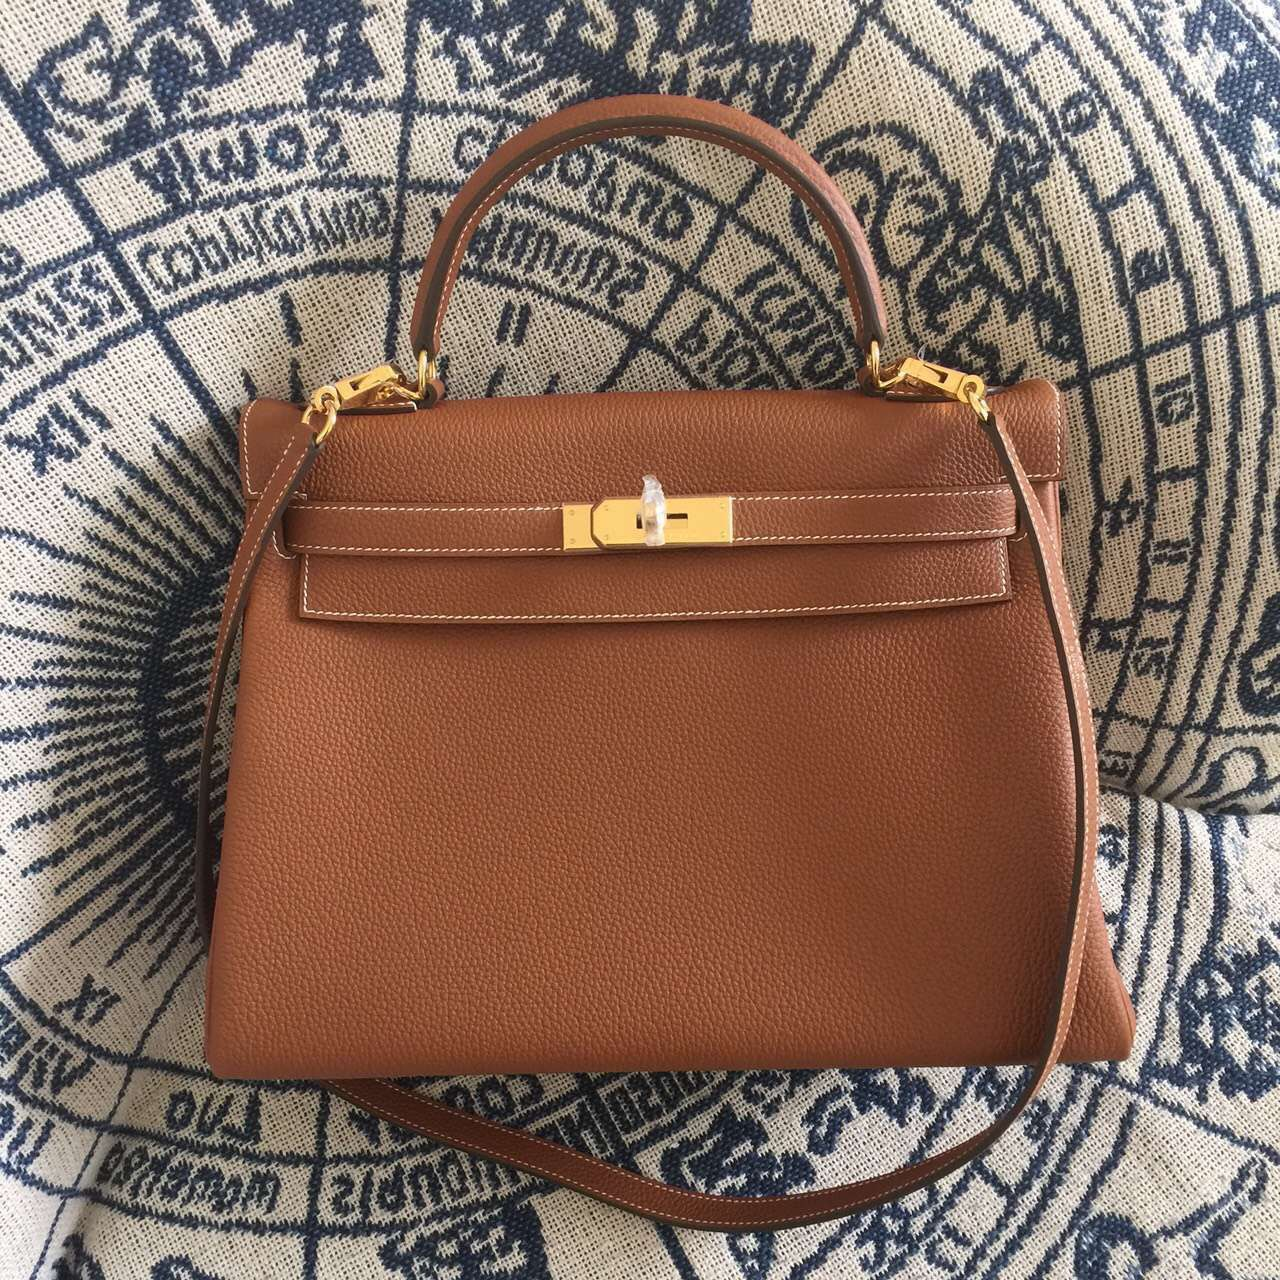 Luxury Handbags Togo Women Authentic-Famous-Brand Messenger-Bags KY Classic H--Bag 100%Hand-Stitching